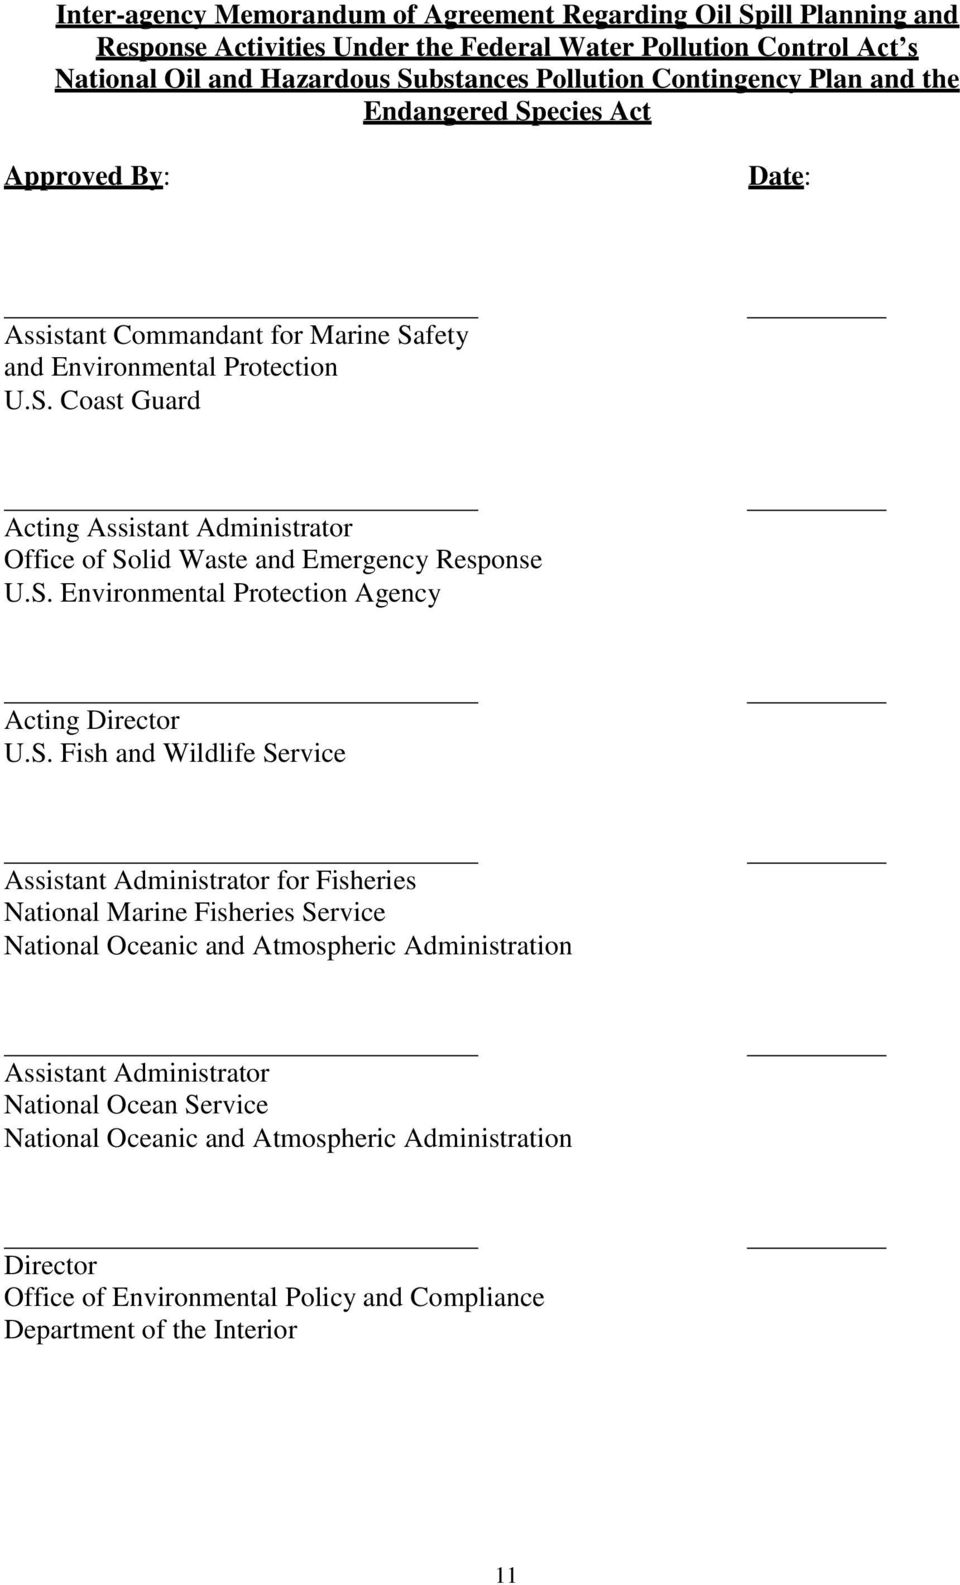 S. Environmental Protection Agency Acting Director U.S. Fish and Wildlife Service Assistant Administrator for Fisheries National Marine Fisheries Service National Oceanic and Atmospheric